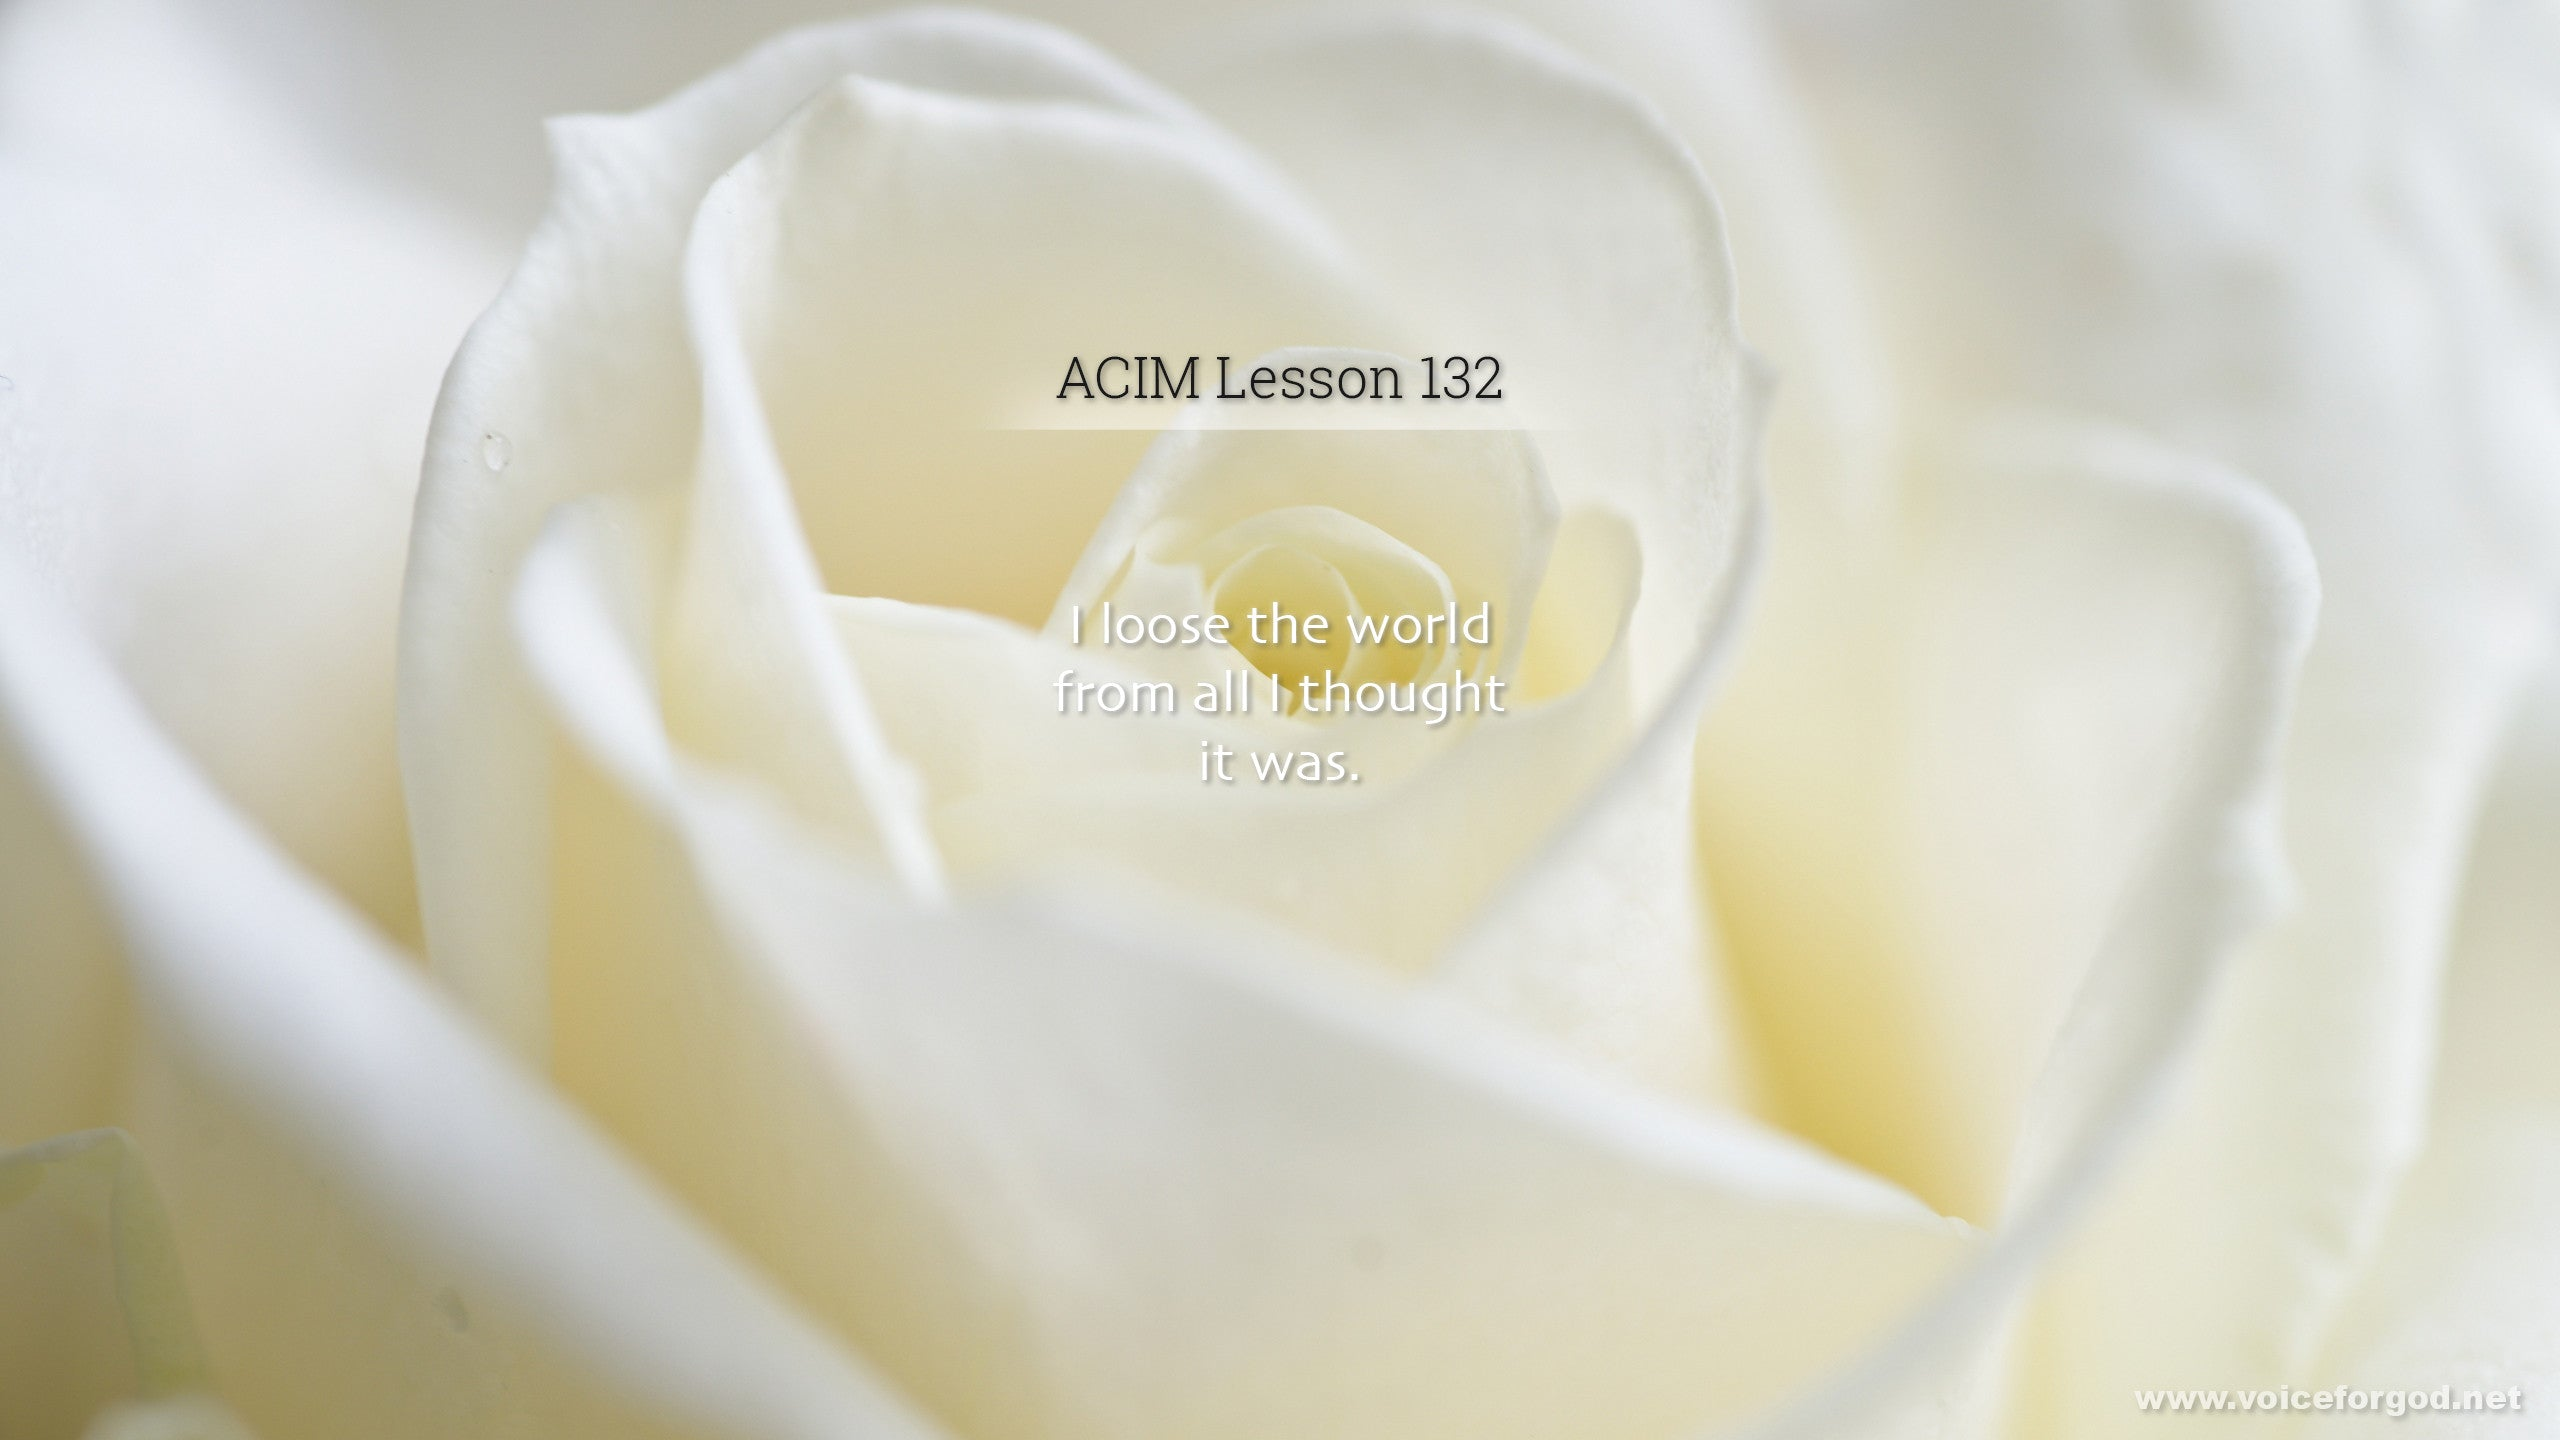 ACIM Lesson 132 - A Course in Miracles Workbook Lesson 132